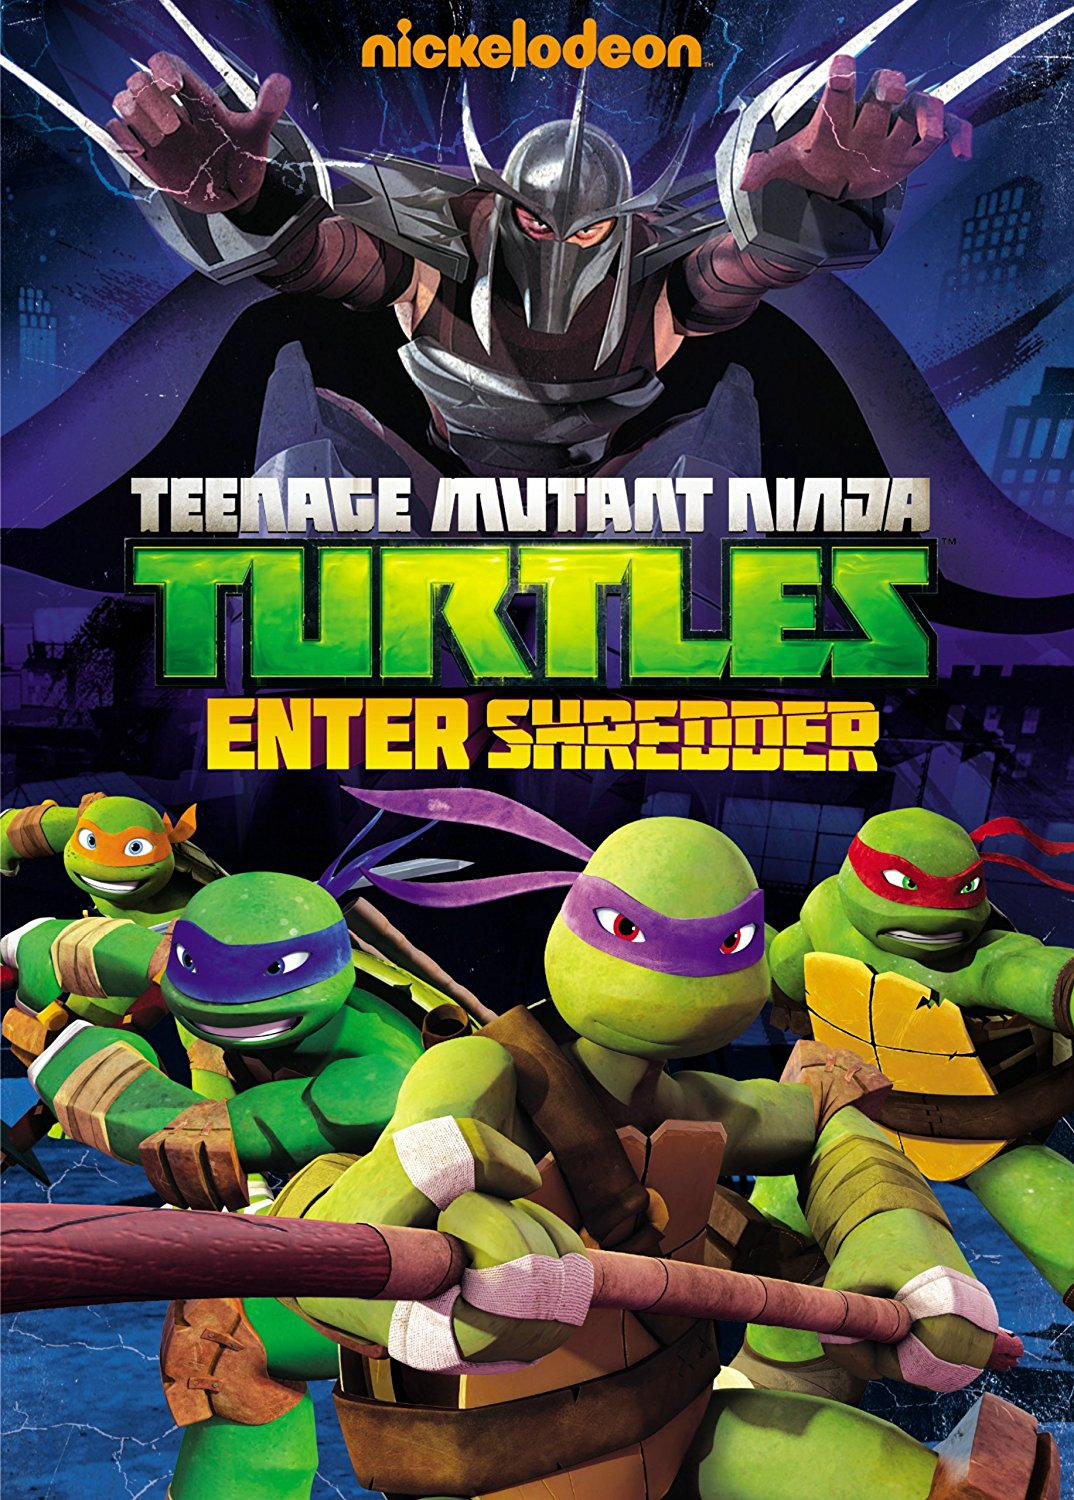 Teenage Mutant Ninja Turtles: Enter Shredder DVD